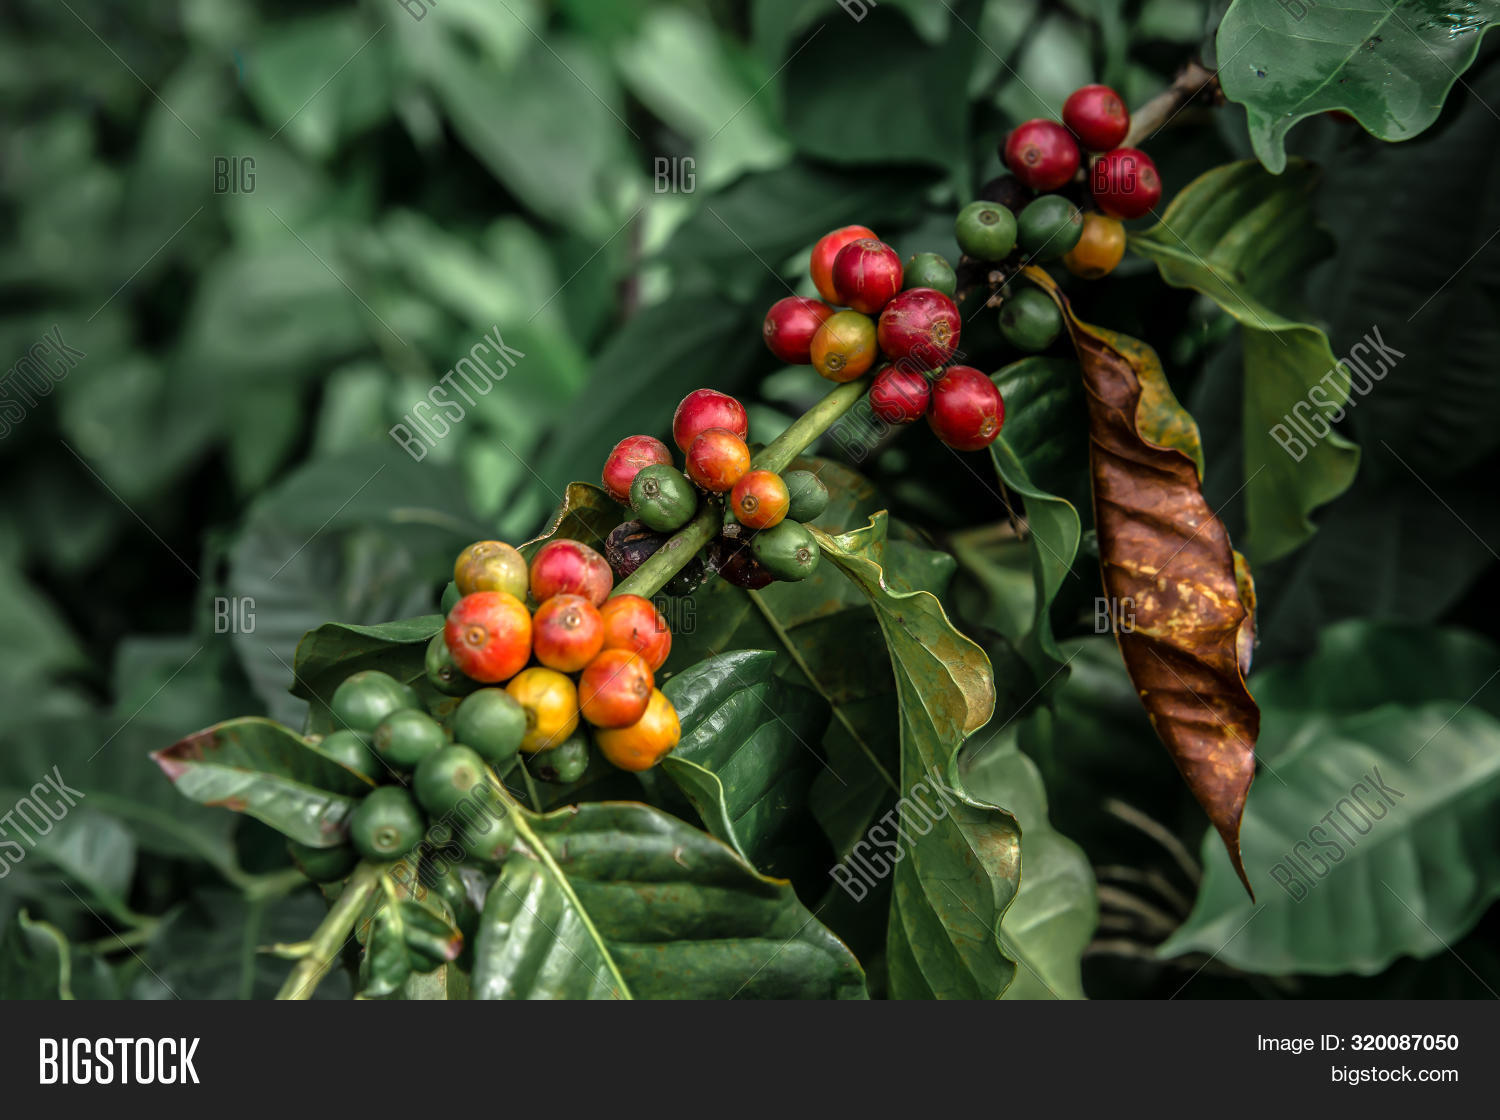 Coffee Beans On Branch Image Photo Free Trial Bigstock